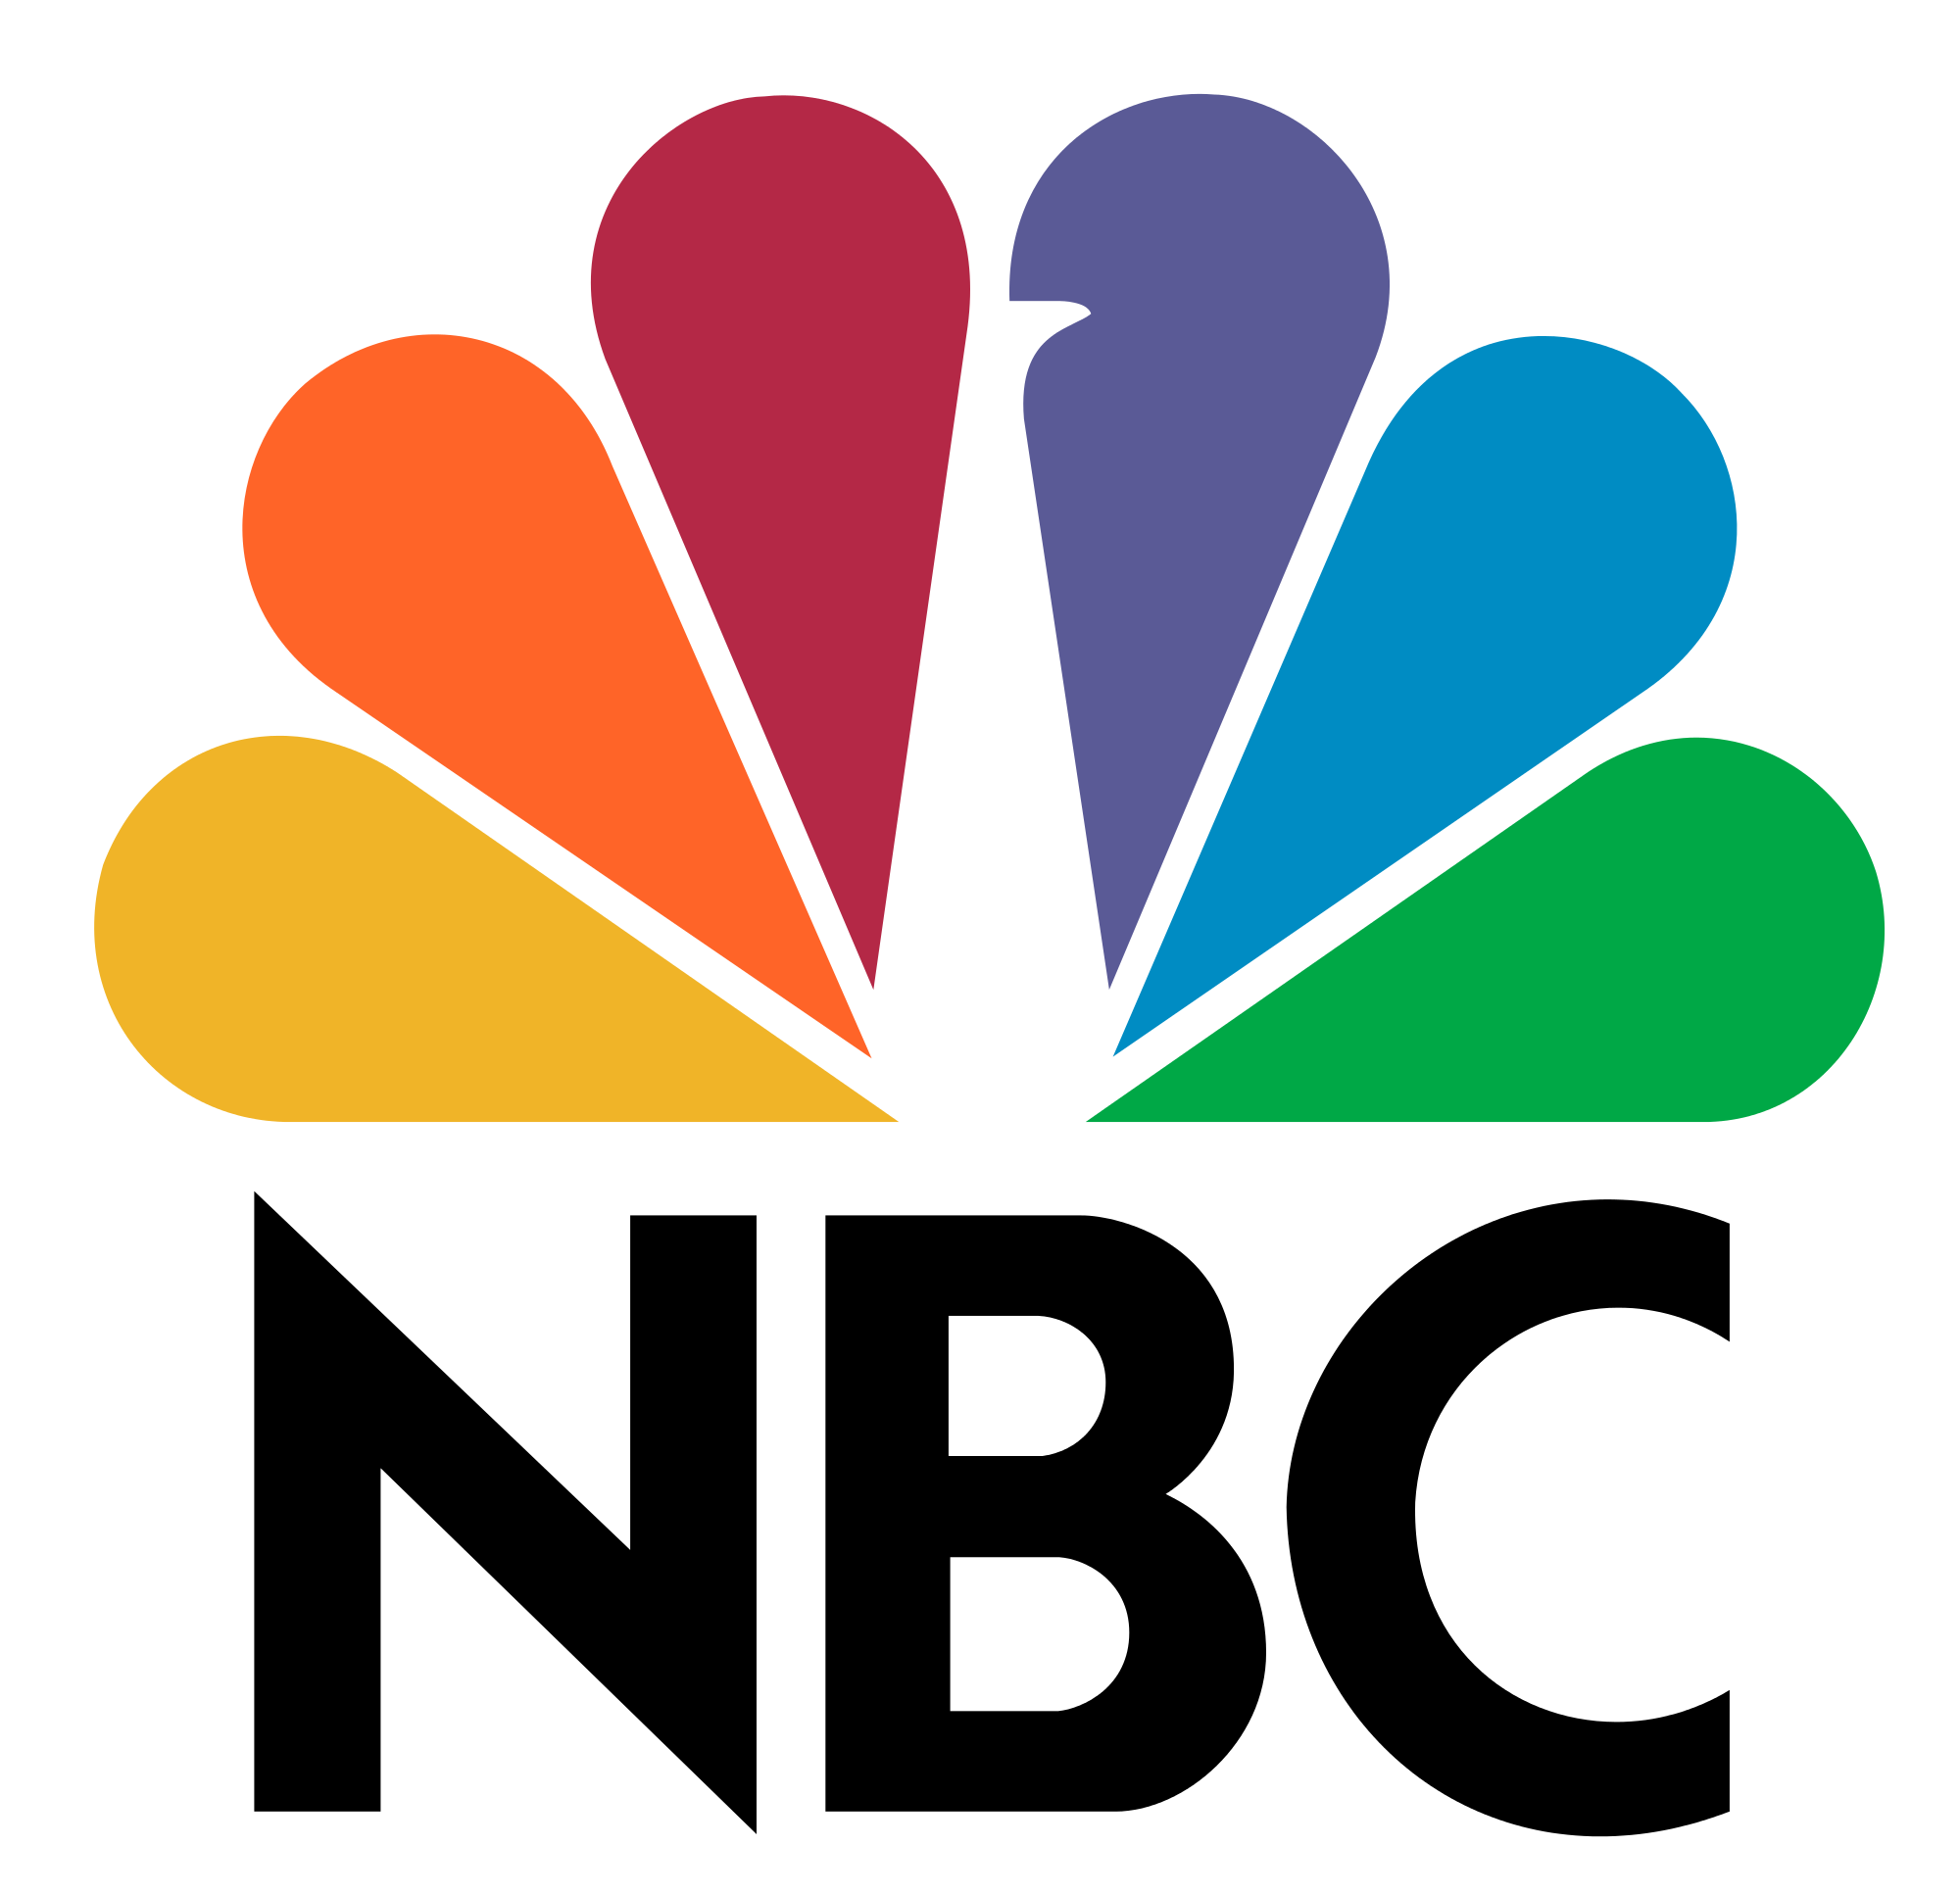 NBC logo Wallpaper